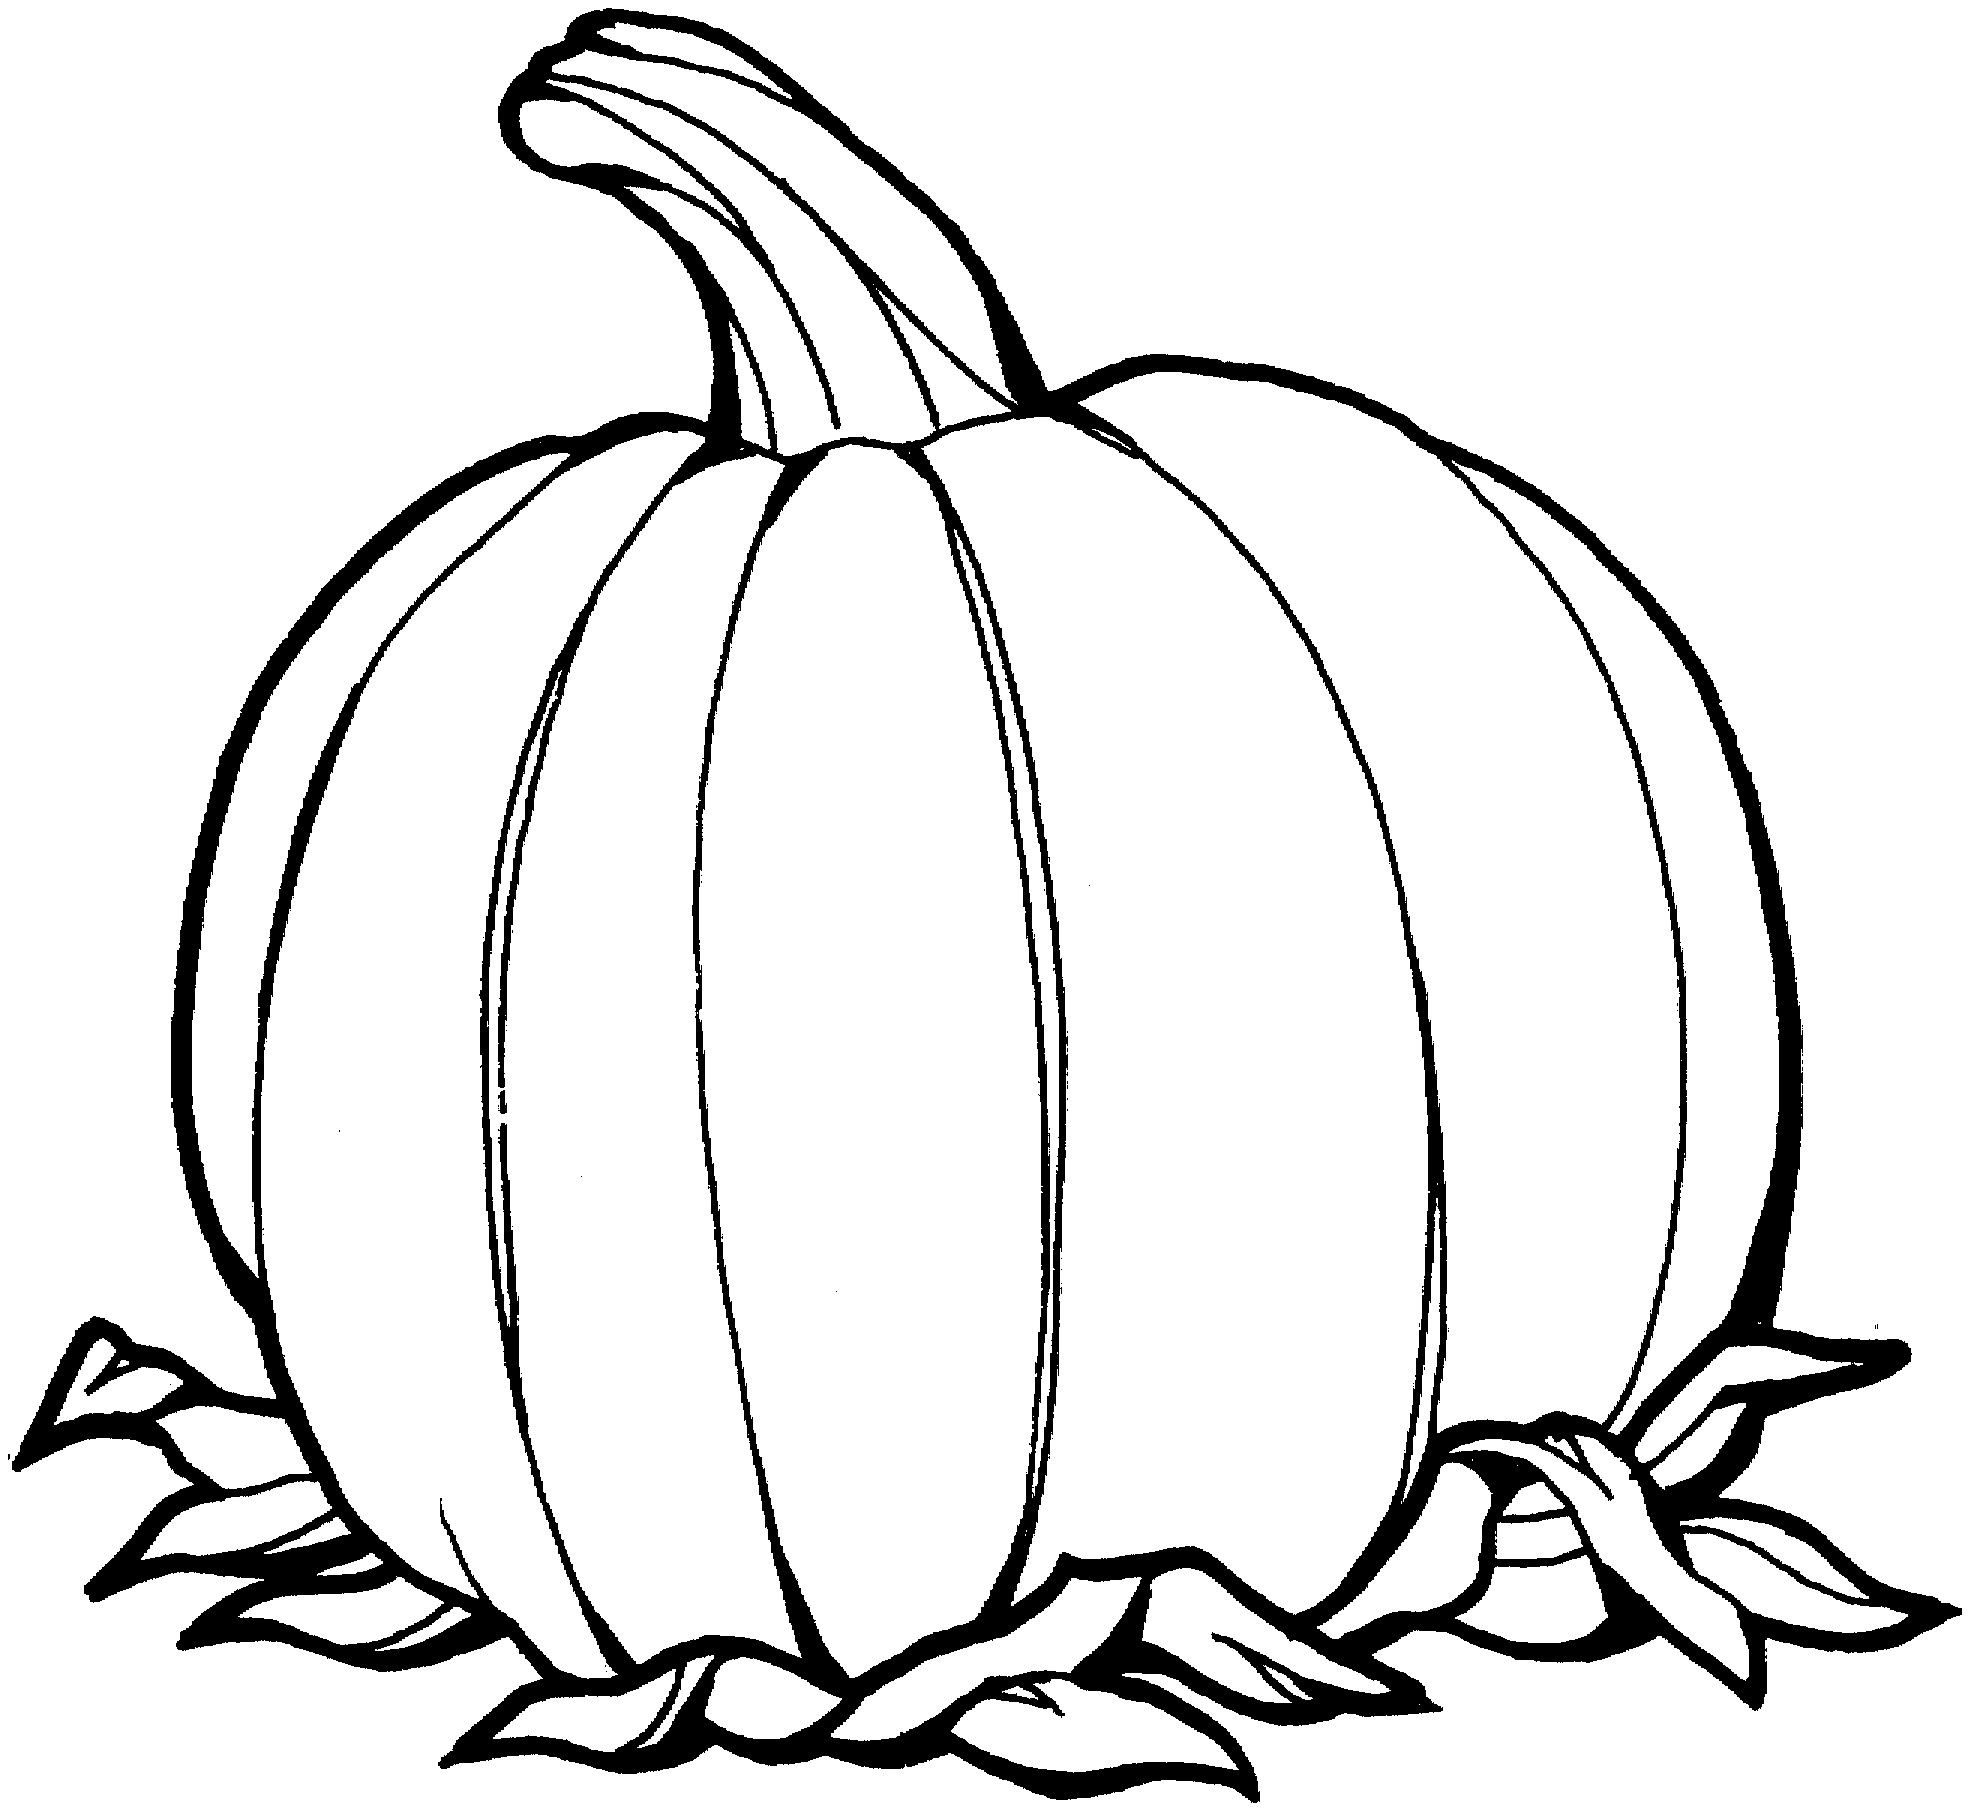 coloring pumpkin halloween clipart halloween pumpkins printable coloring pages for kidsfree coloring halloween clipart pumpkin